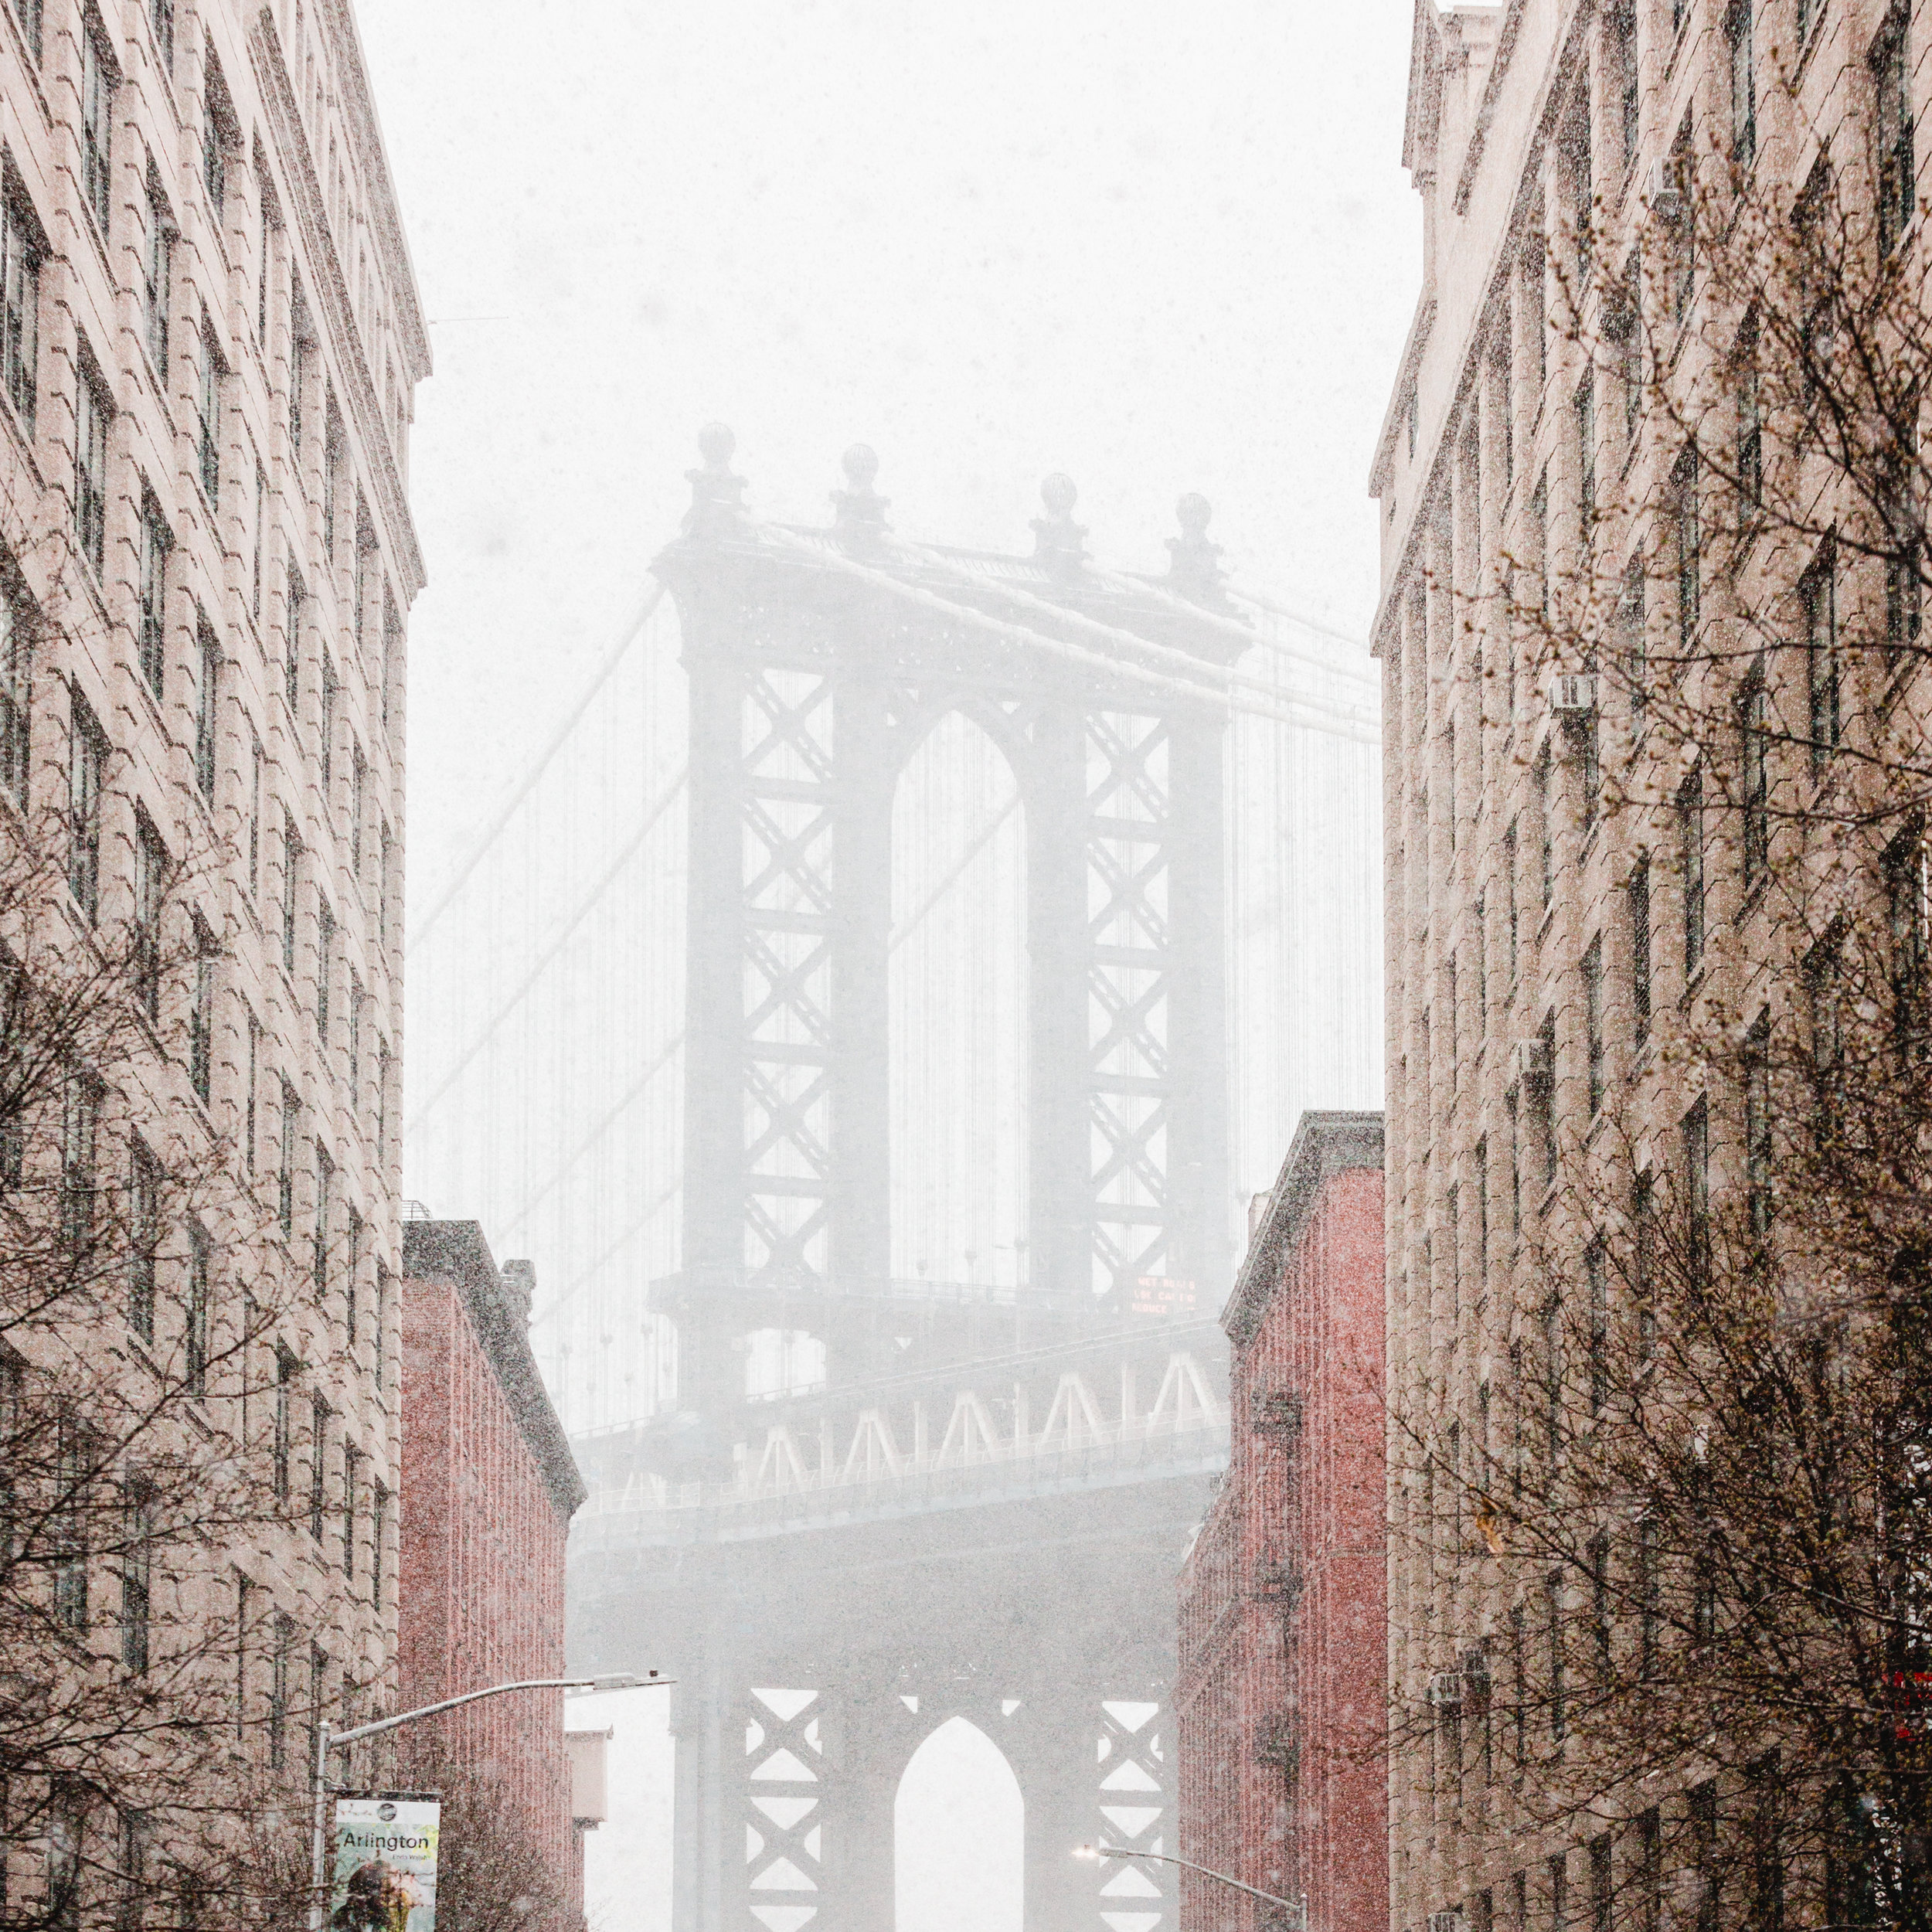 New York Brooklyn Dumbo Manhattan Bridge Jay Street Snowstorm